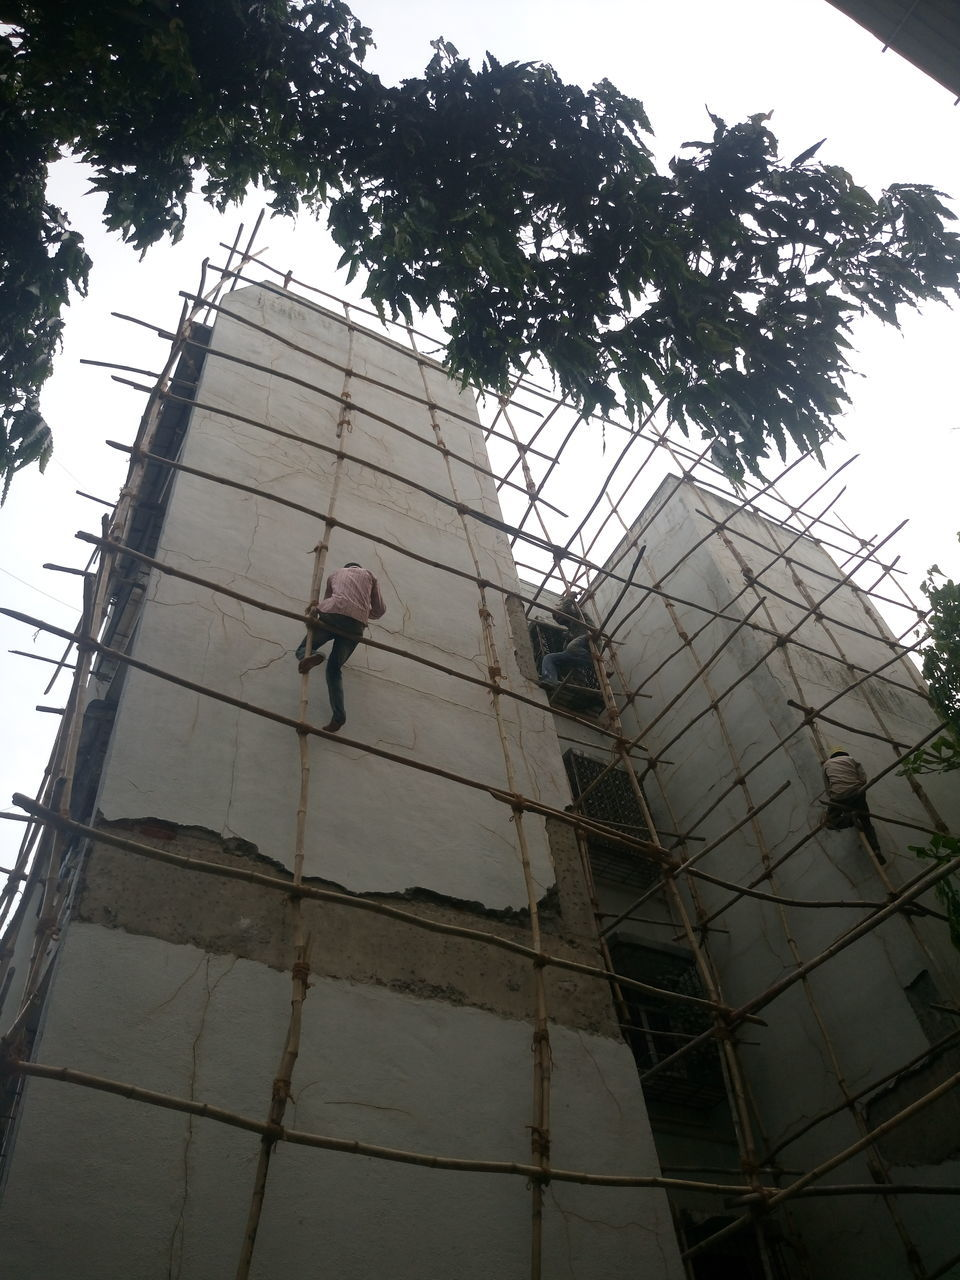 architecture, building exterior, low angle view, built structure, real people, one person, men, working, day, occupation, outdoors, full length, tree, manual worker, window washer, young adult, people